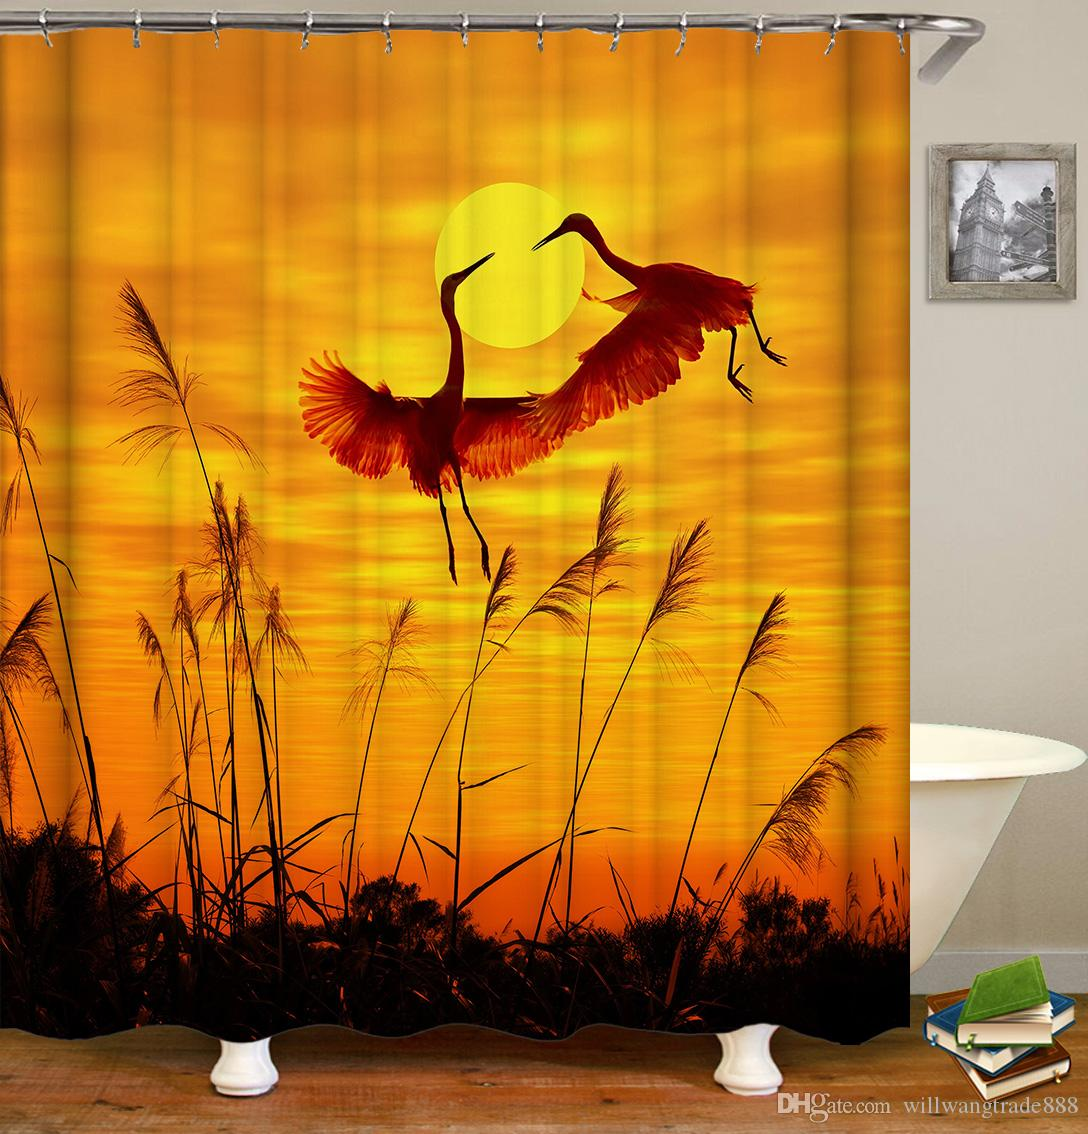 165*180cm 180*180cm Waterproof Cool Parrots Cocks Birds Cranes Pattern Designed Digital Printing Bathroom Shower Window Curtain with Hooks